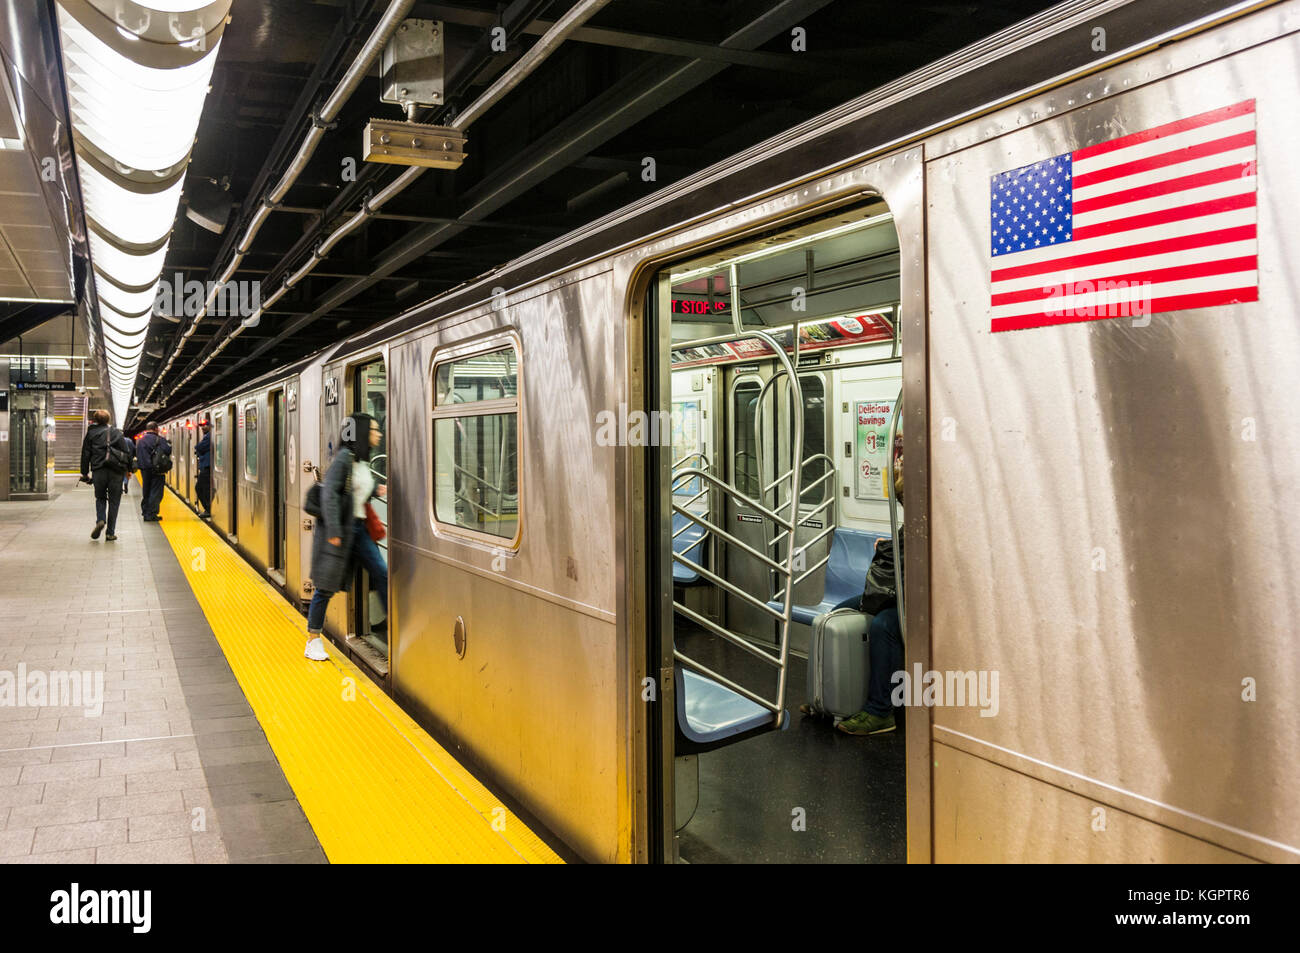 subway train New york usa new york subway train waiting at a subway station platform new york city usa New york - Stock Image